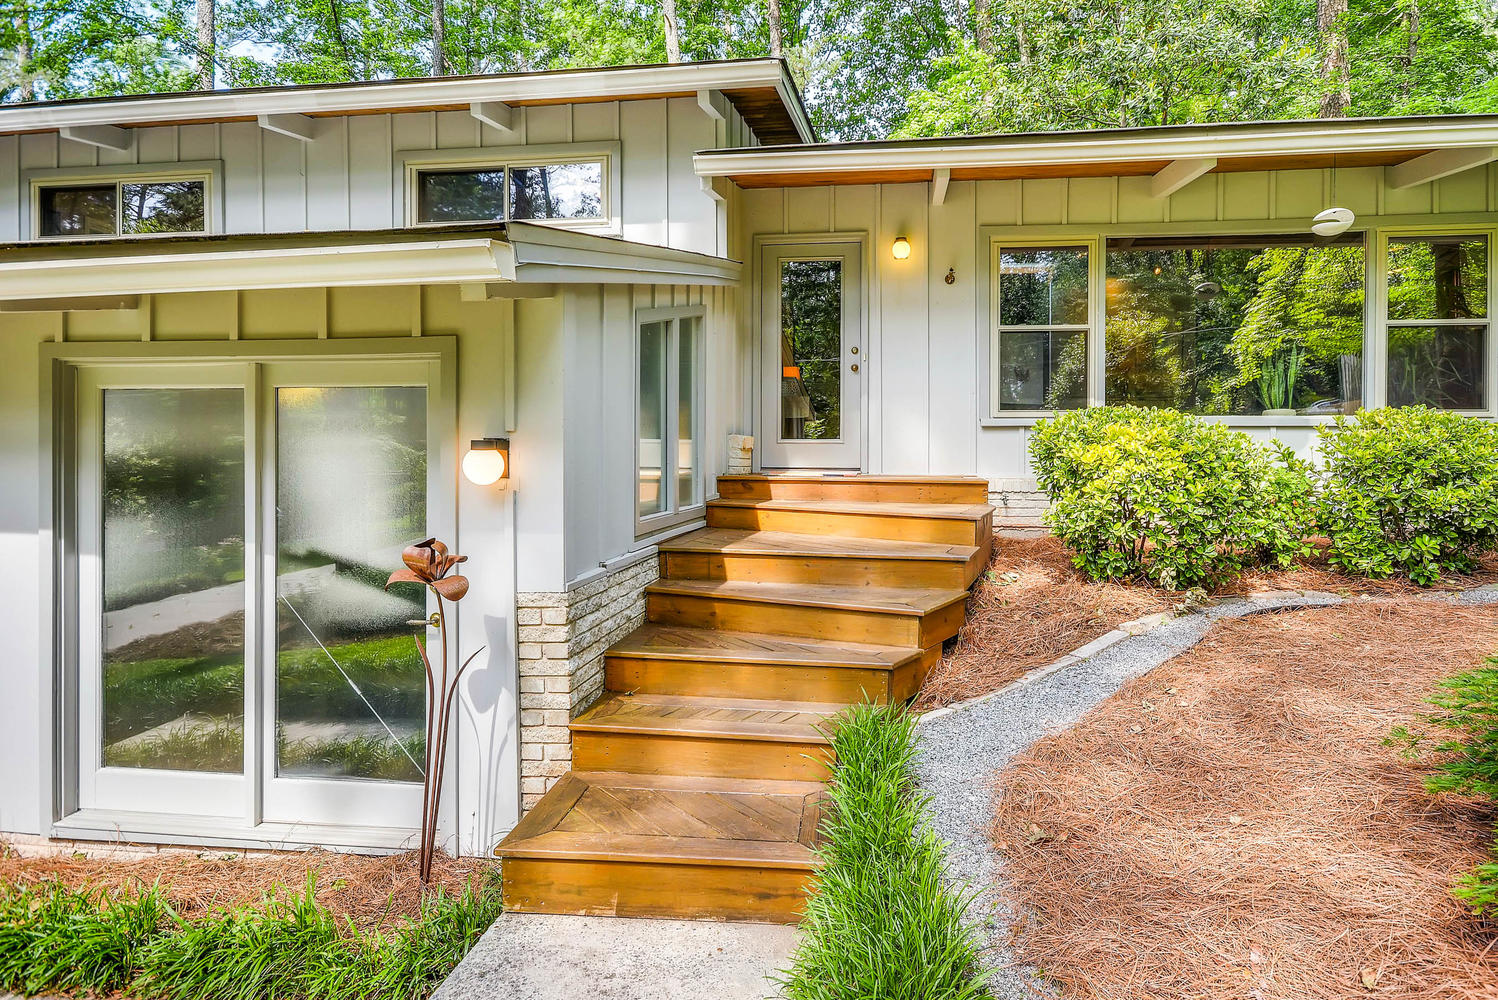 Atlanta mid century homes for sale archives domorealty for Modern homes